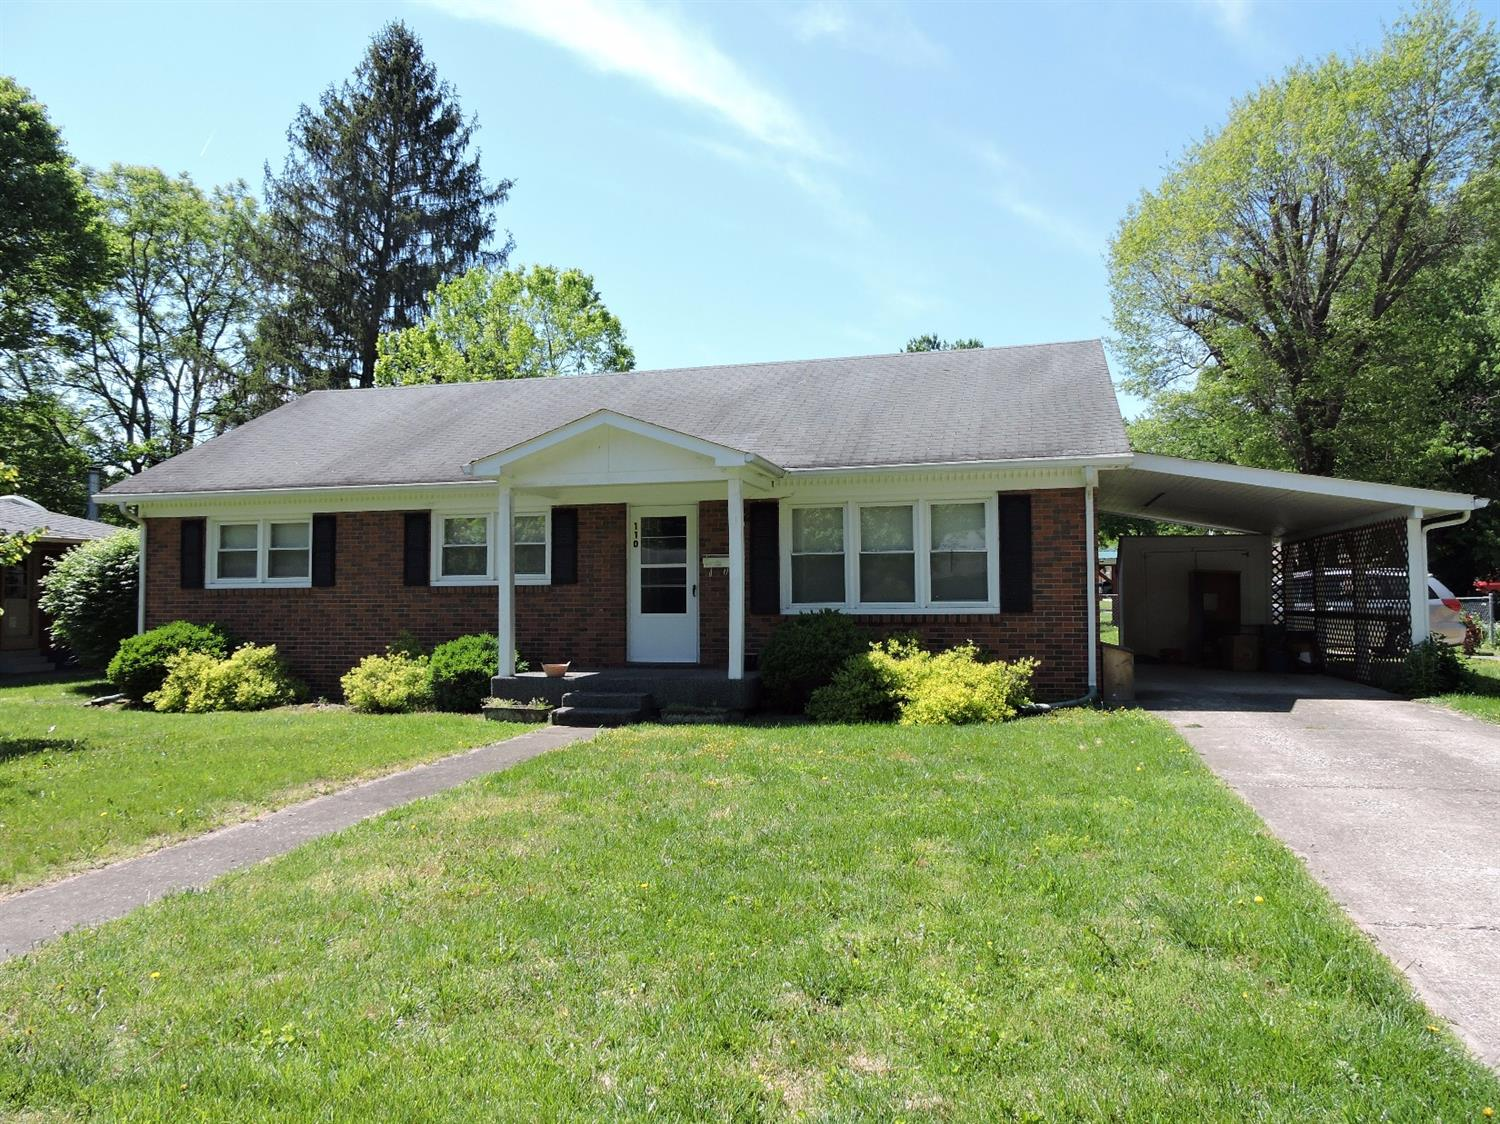 Home For Sale at 1749 N Richmond Rd, Berea, KY 40403